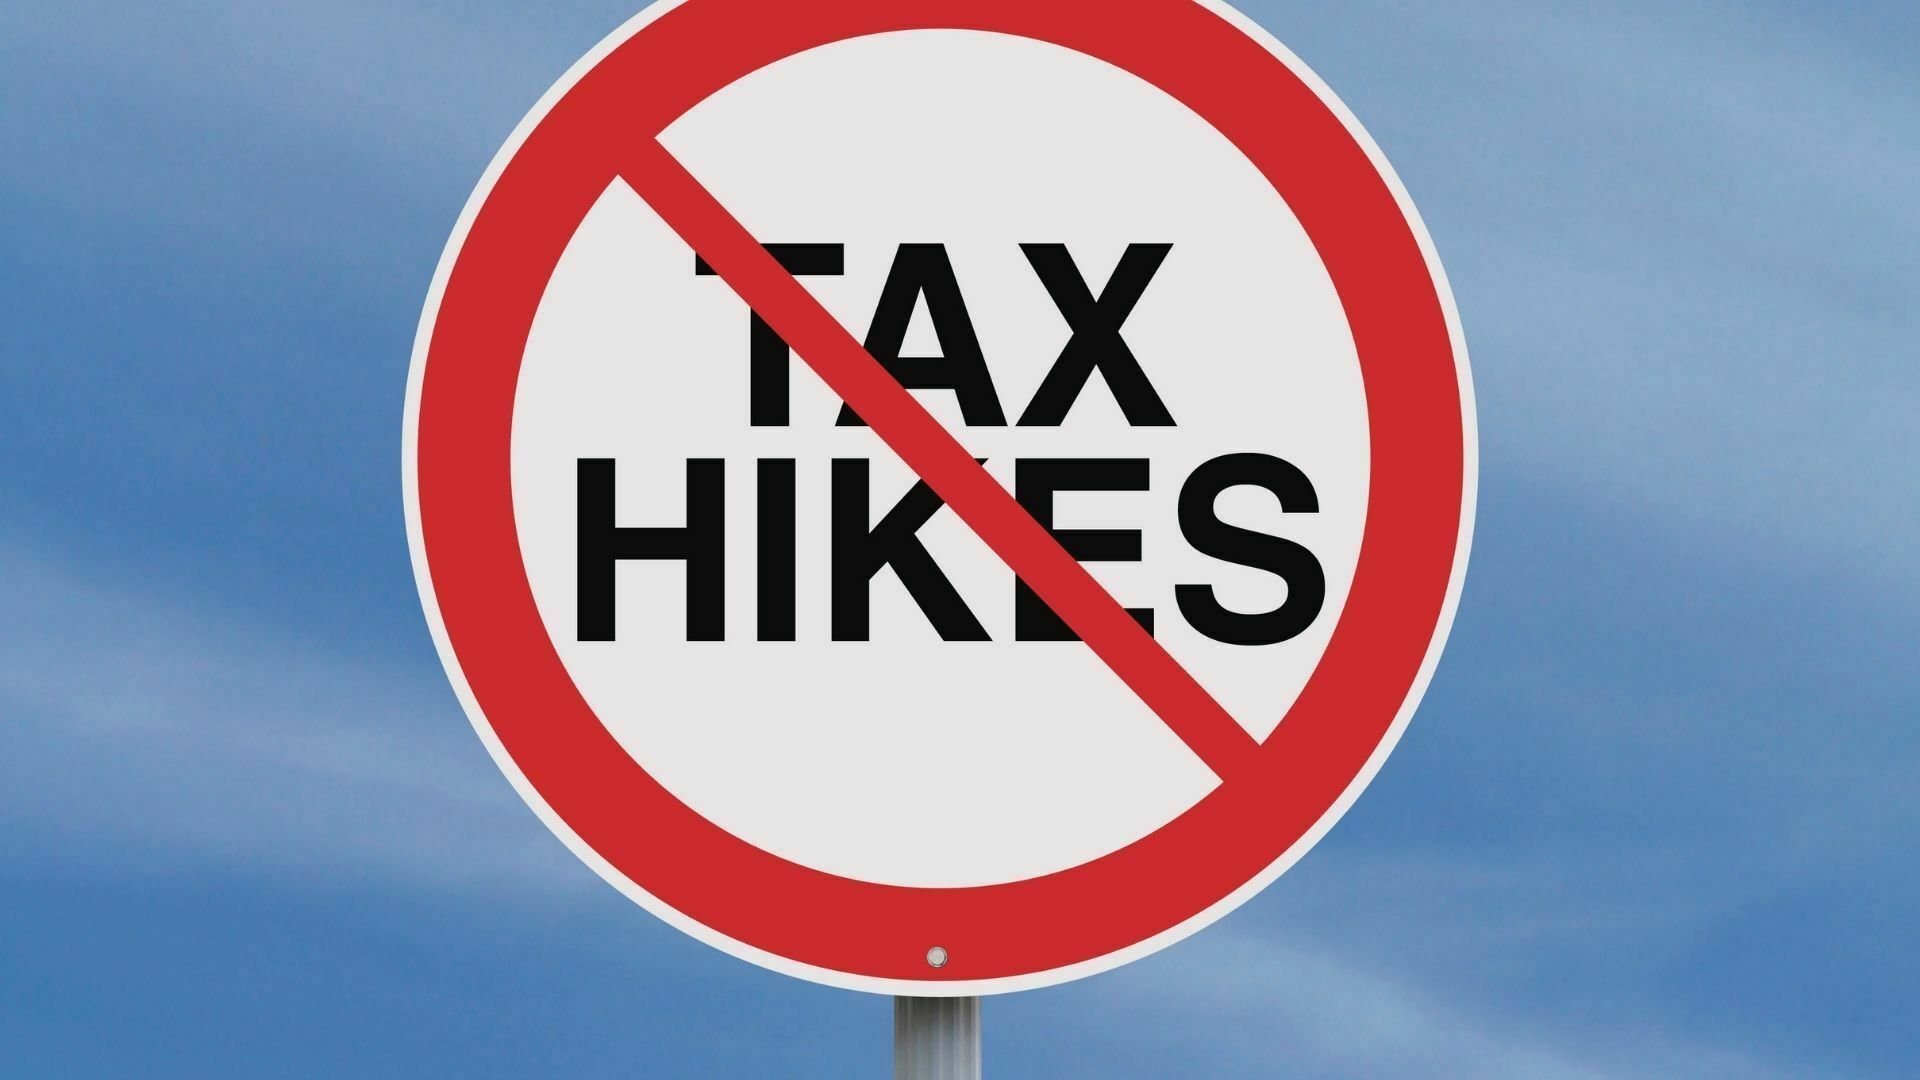 Stop tax hikes